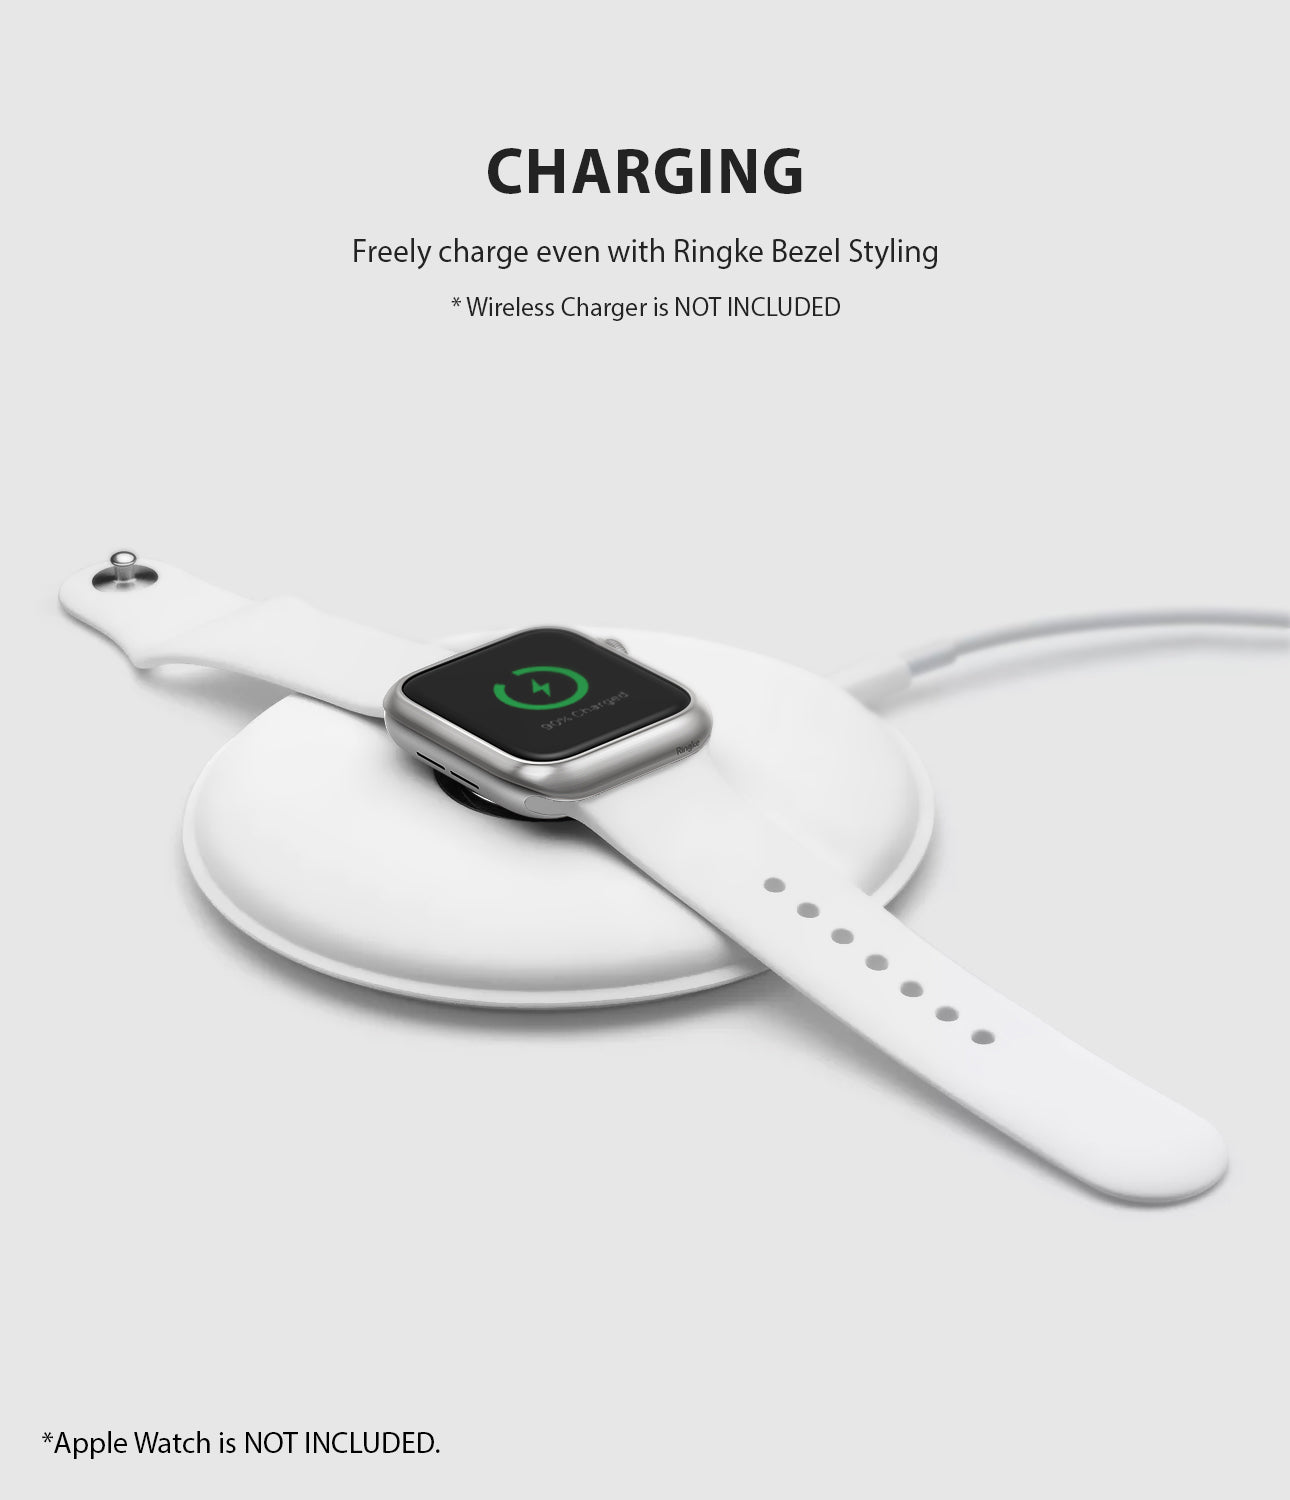 apple watch 3 2 1 38mm case ringke bezel styling stainless steel frame cover 38-09 wireless charging